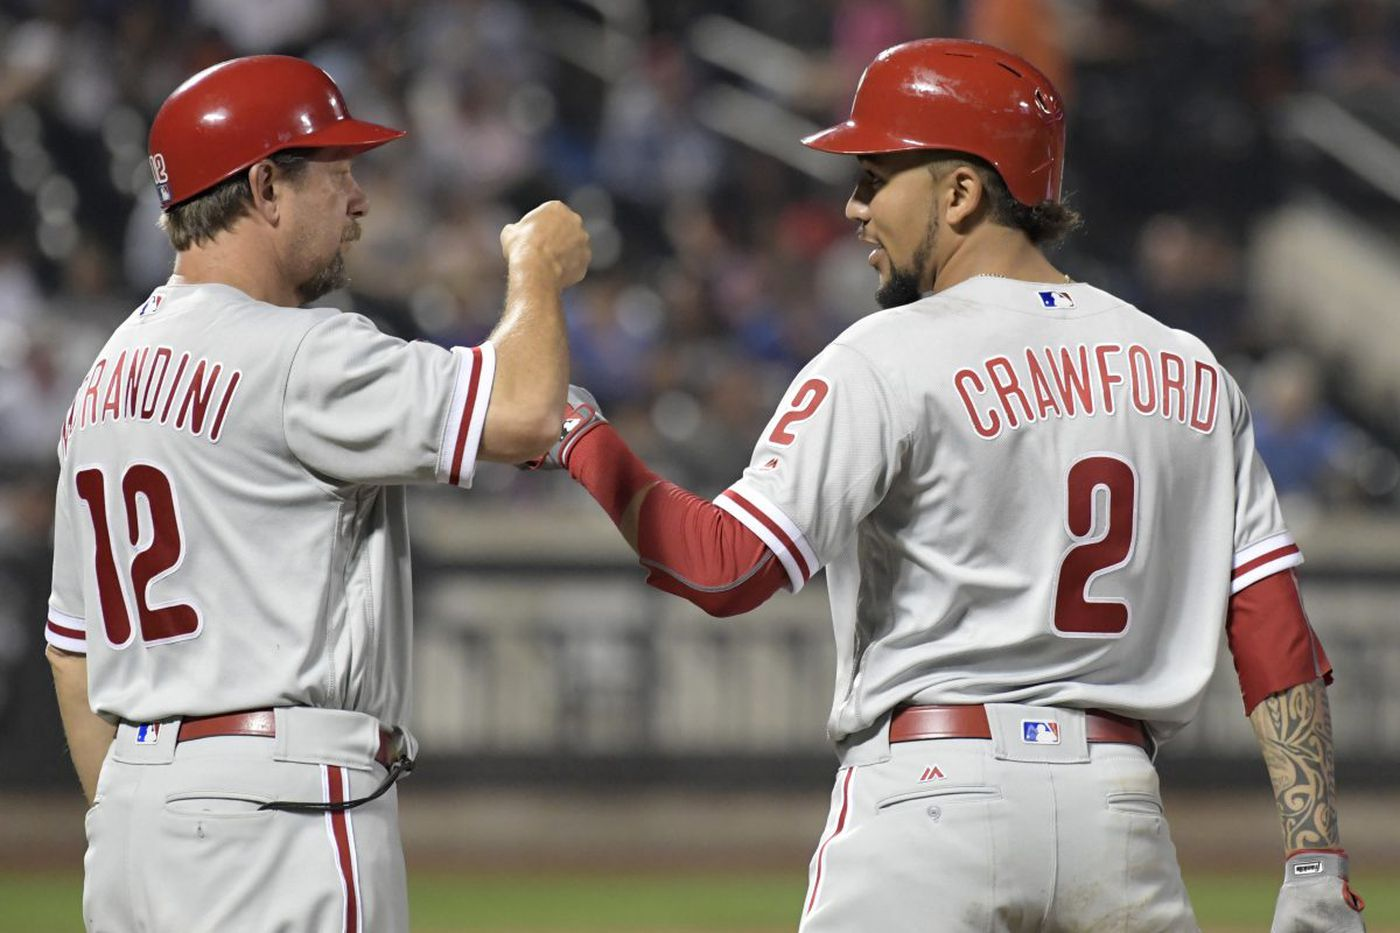 Next for the Phillies: A new coaching staff